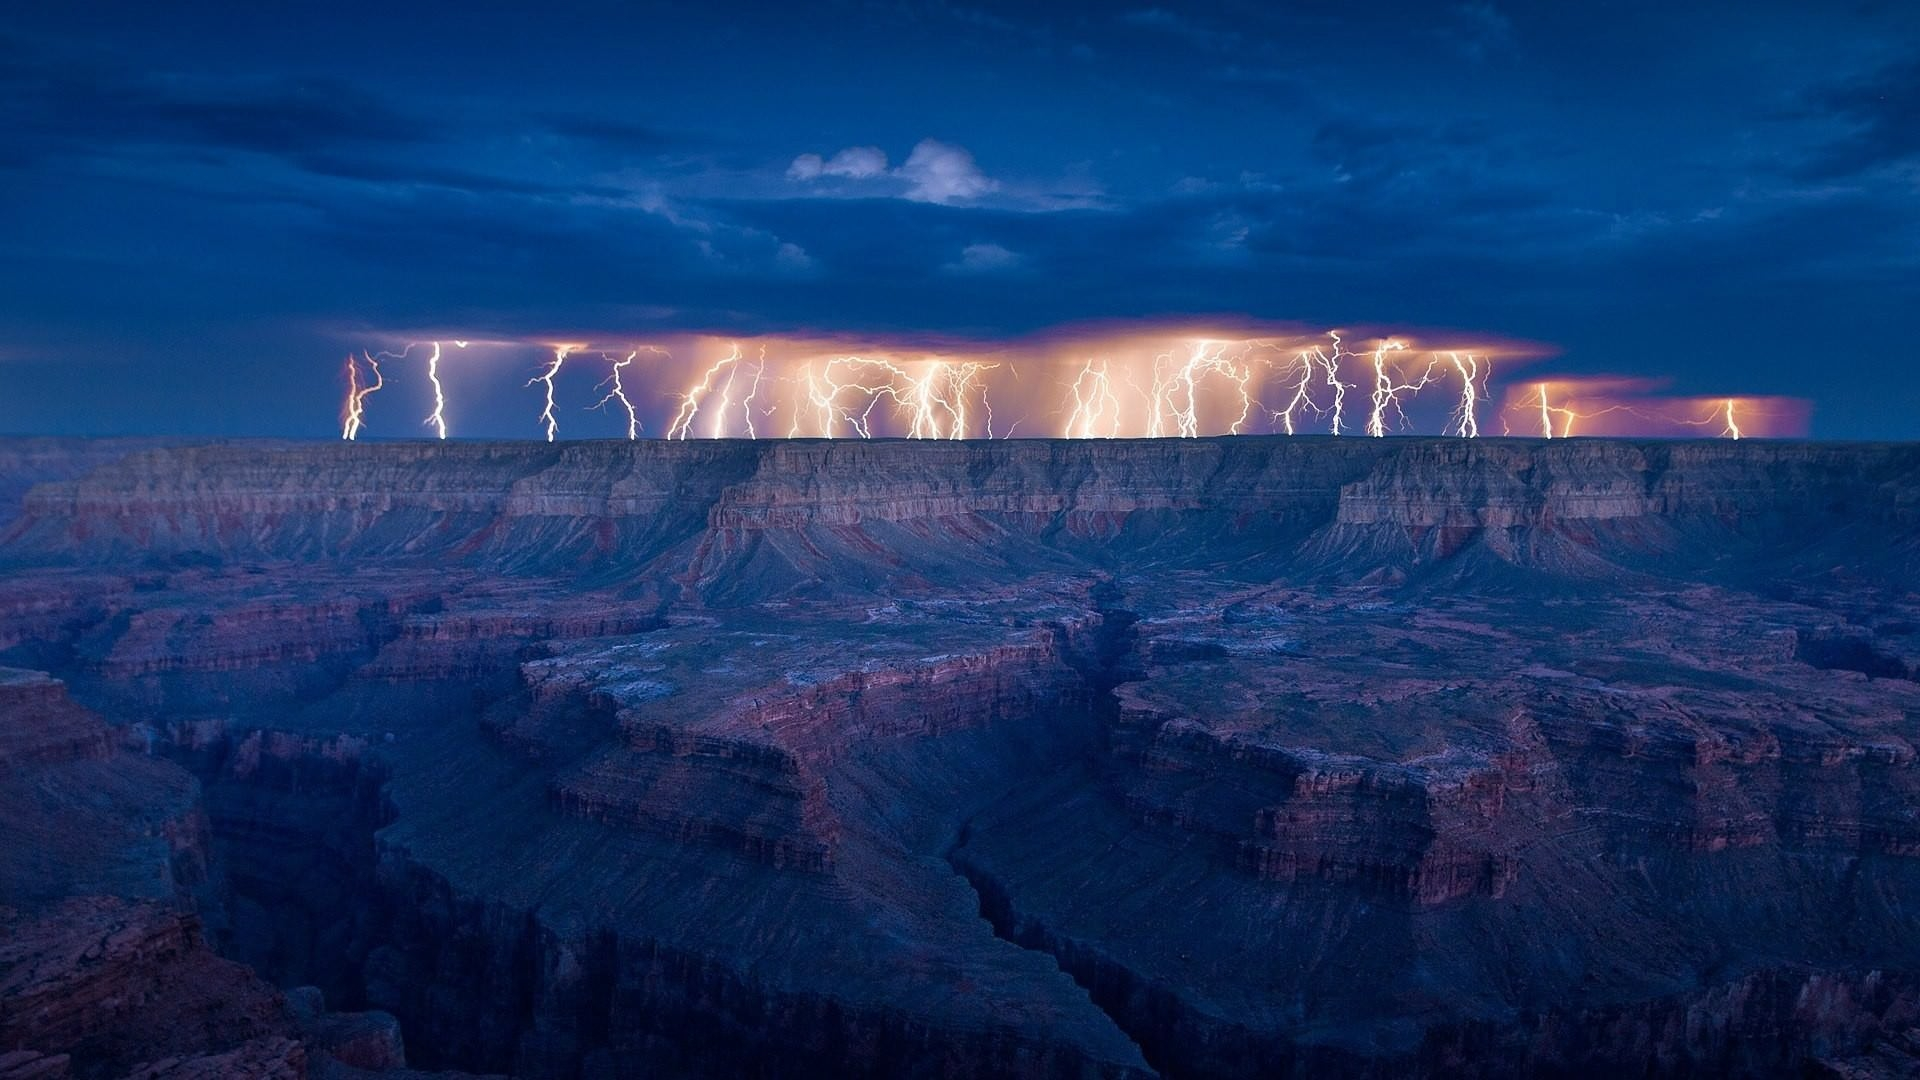 Amazing Lightning Storm Wallpaper